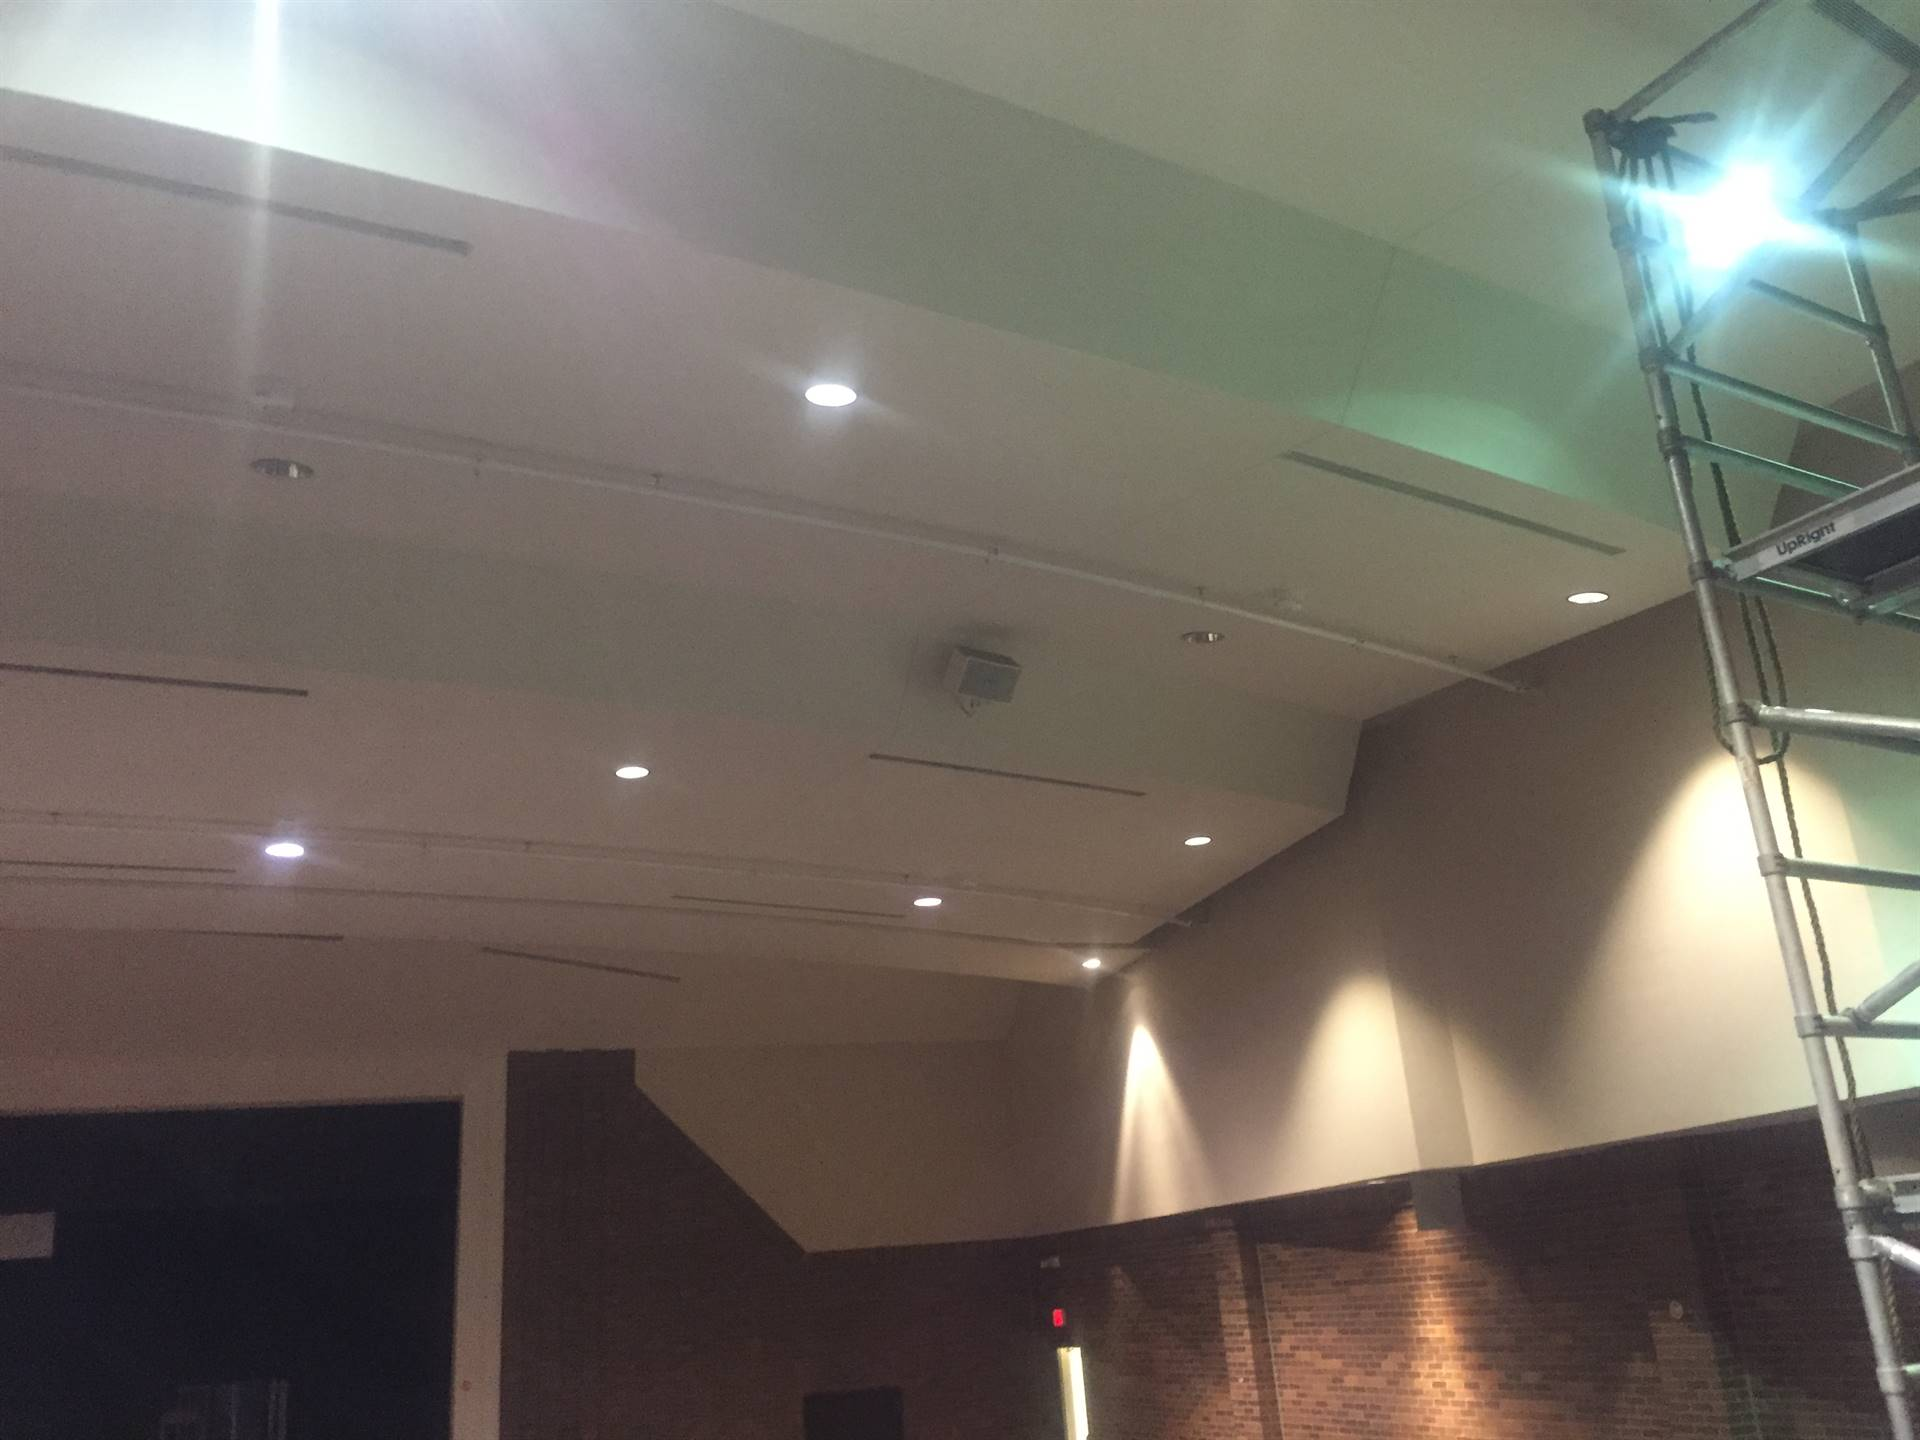 Performing Arts Center fire suppression system 7-26-19